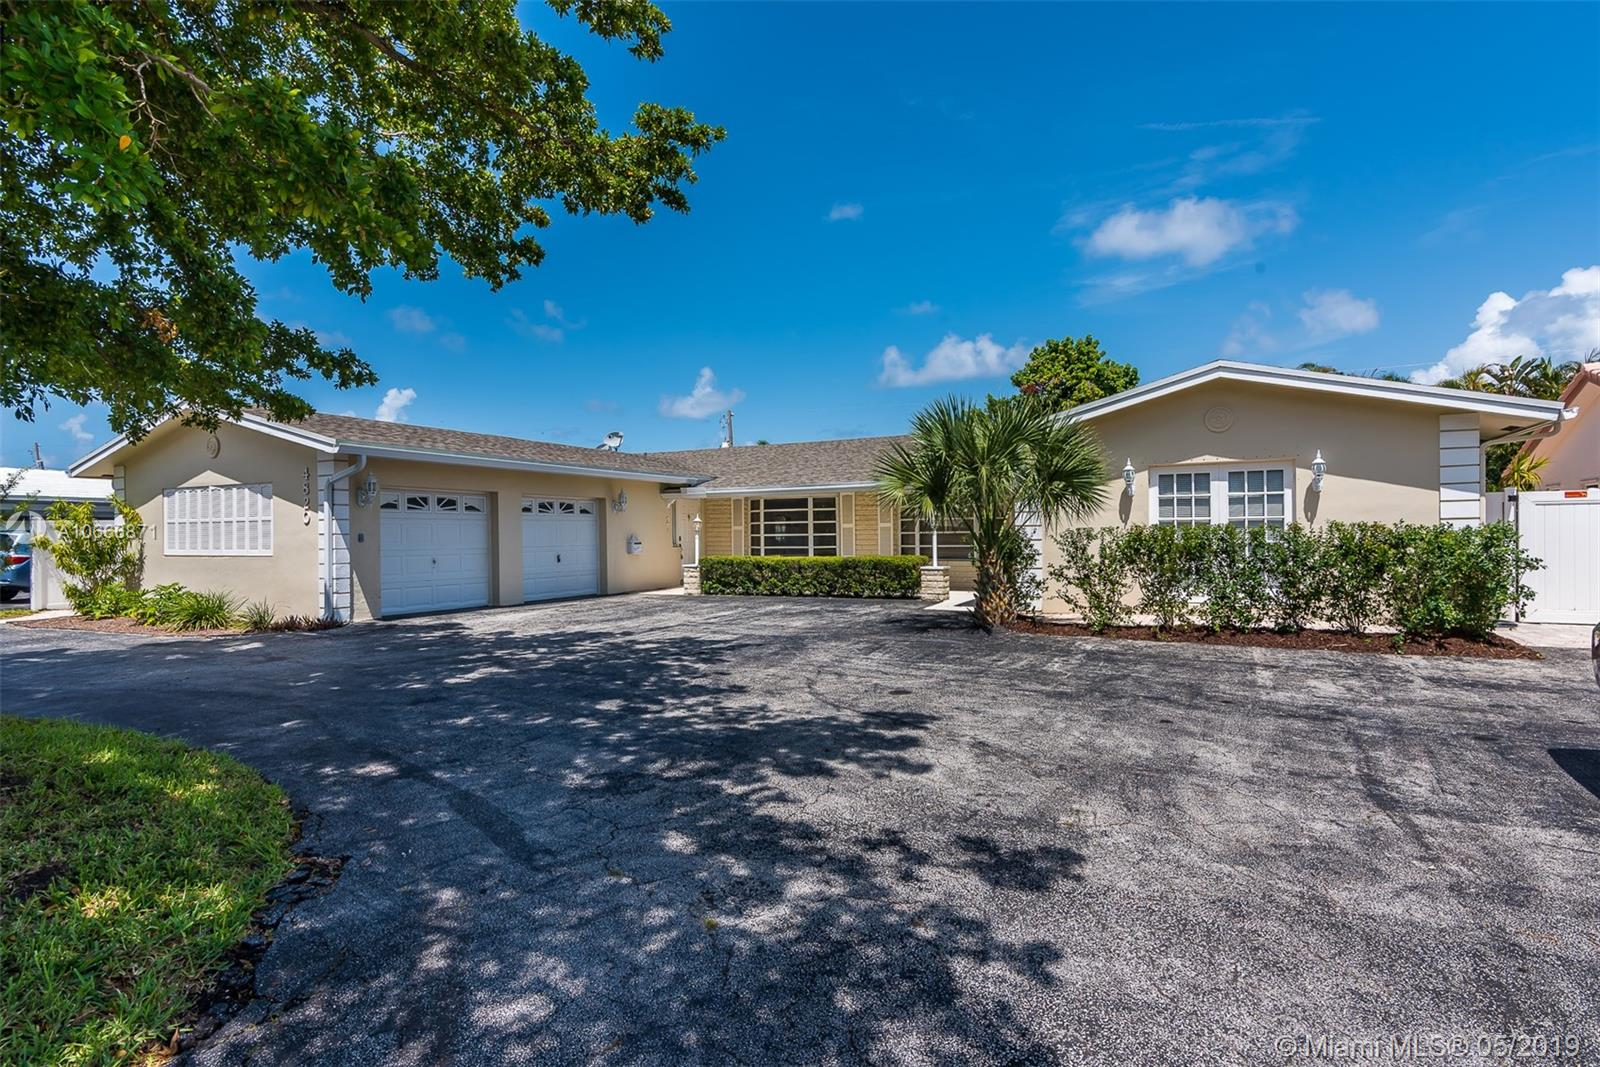 4818 NE 25th Ave, one of homes for sale in Sea Ranch Lakes